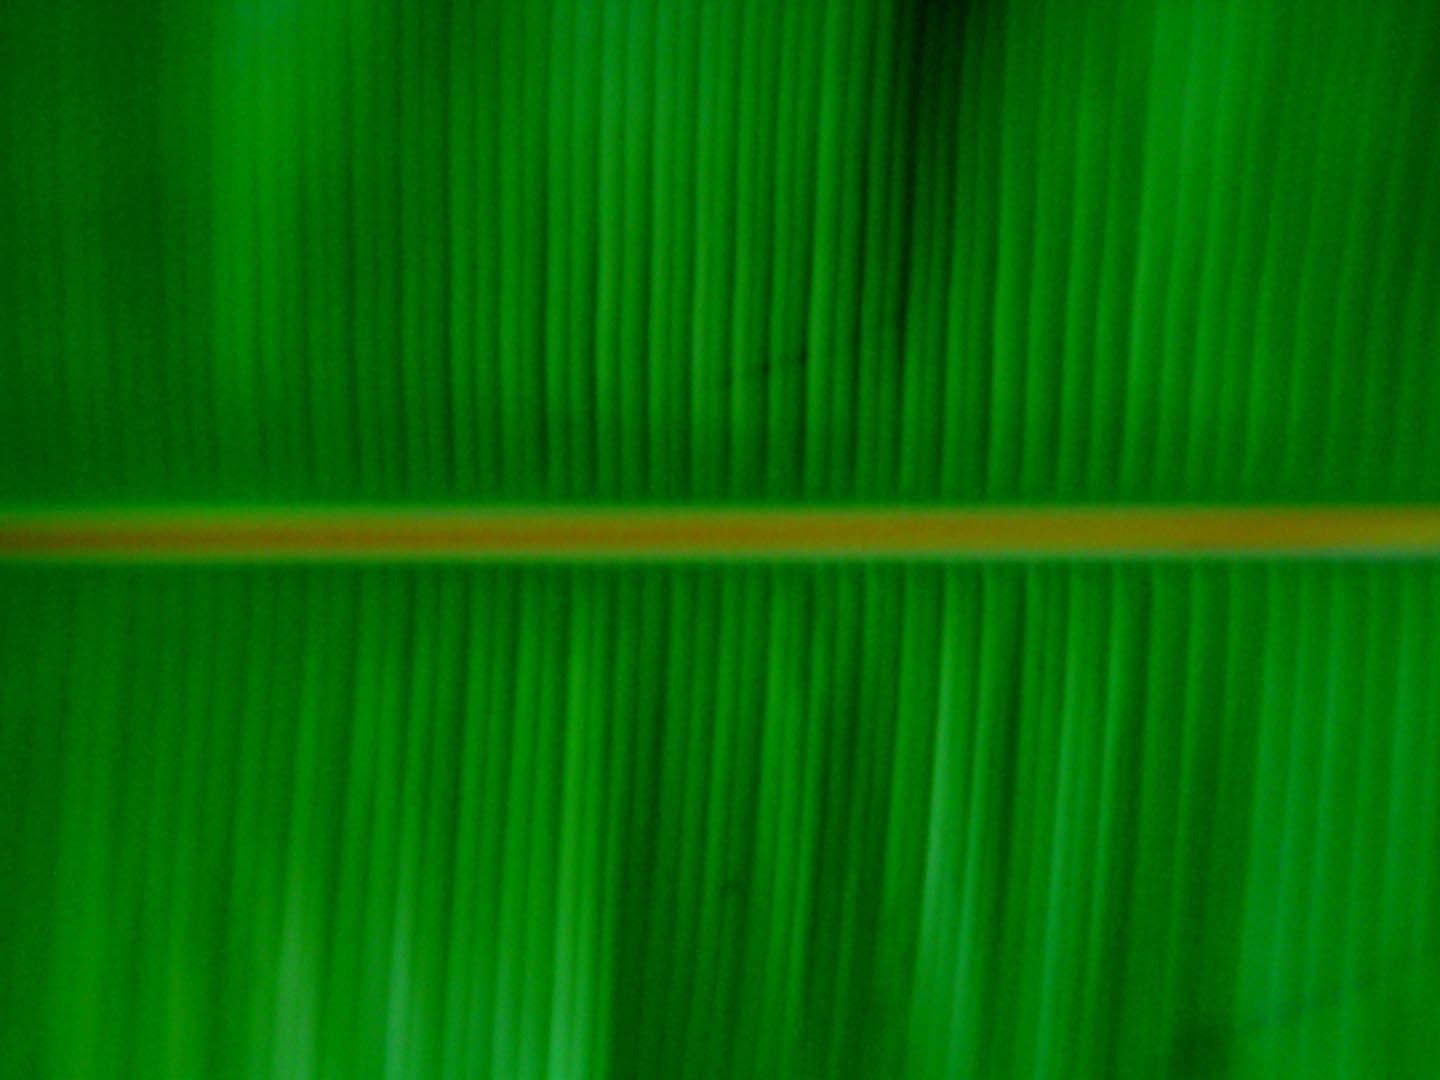 Banana Leaf   Food And Drink Wallpaper Image featuring Fruit 1440x1080